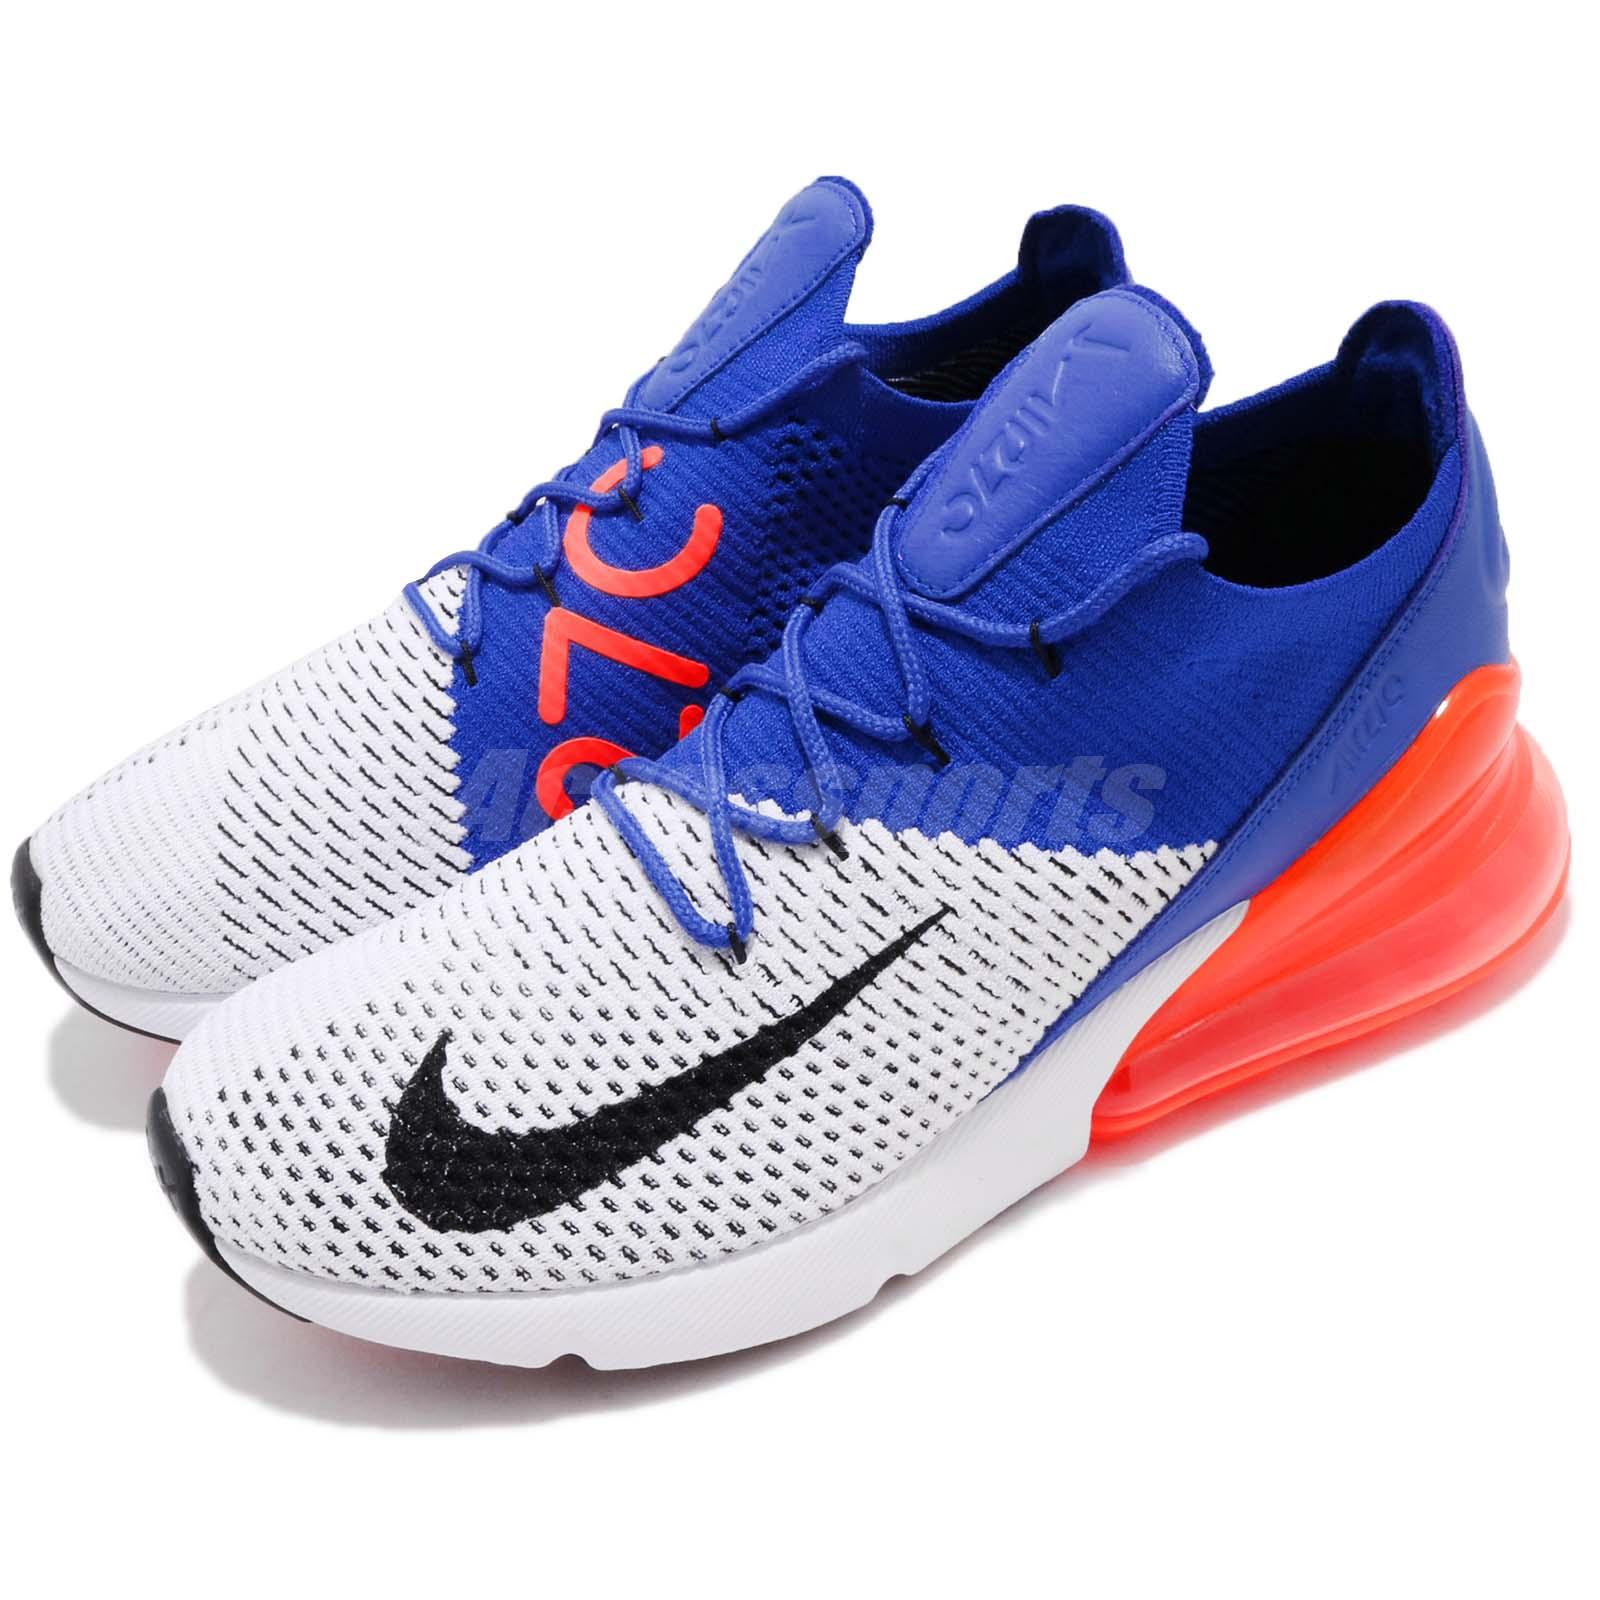 best loved 79594 9f3d6 Details about Nike Air Max 270 Flyknit FK White Black Racer Blue Men  Running Shoes AO1023-101